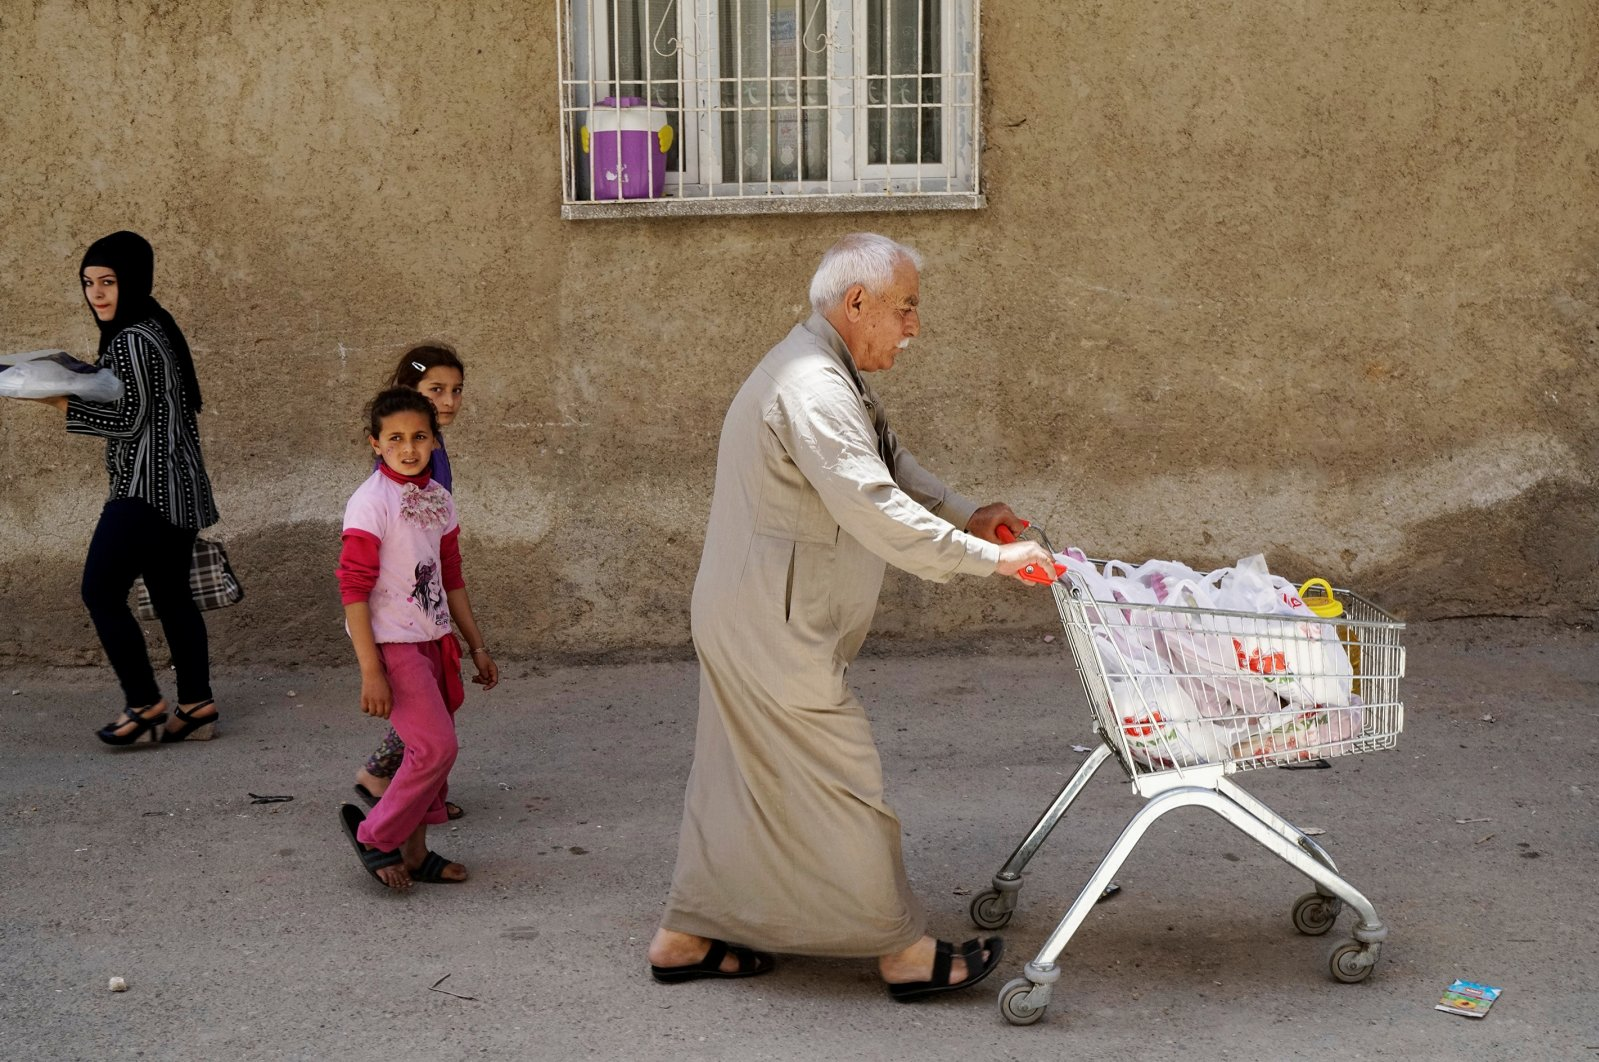 Ahmed, a 60-year old Syrian refugee man, pushes a shopping cart as he walks to his home in Gaziantep, Turkey, May 16, 2016. (REUTERS Photo)